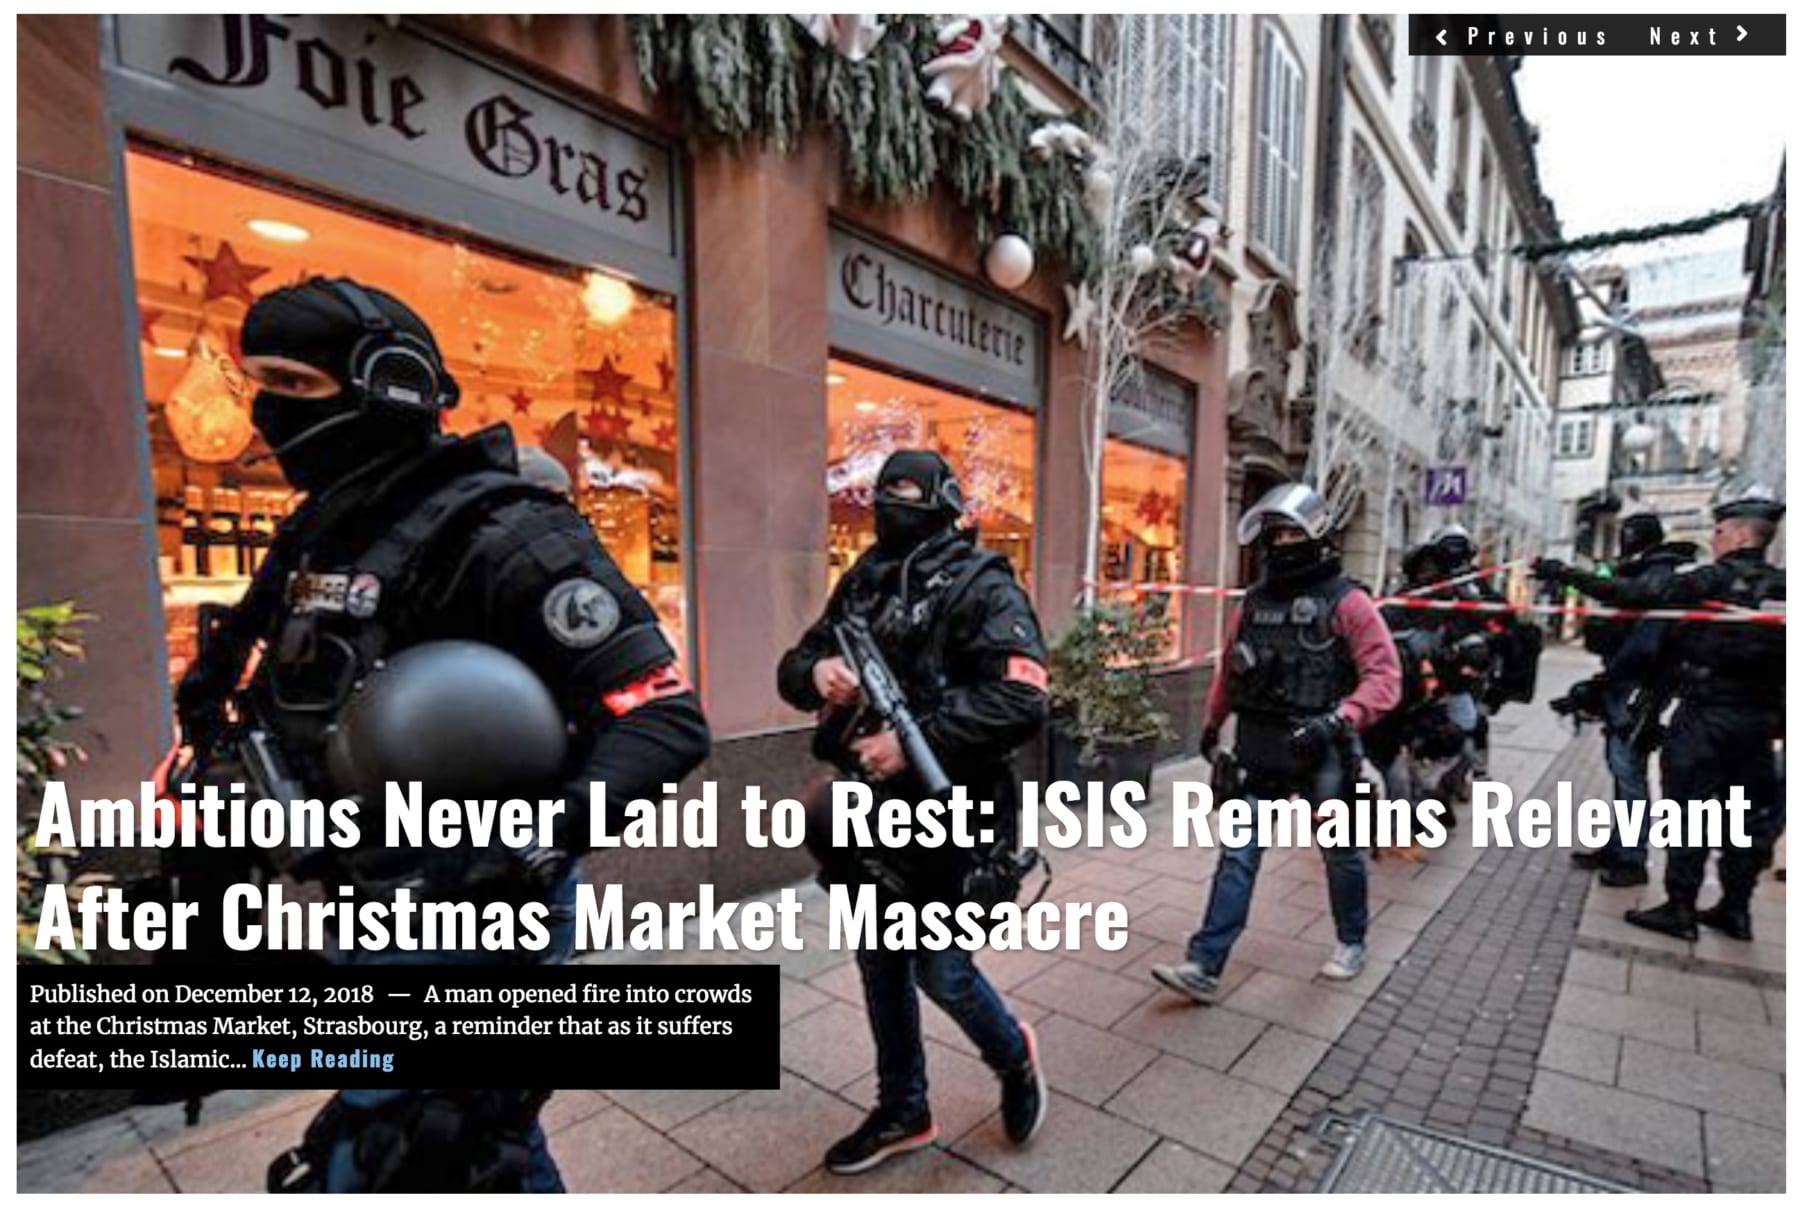 Image Headline Ambitions Never Laid ISIS Strasbourg DEC 12 2018